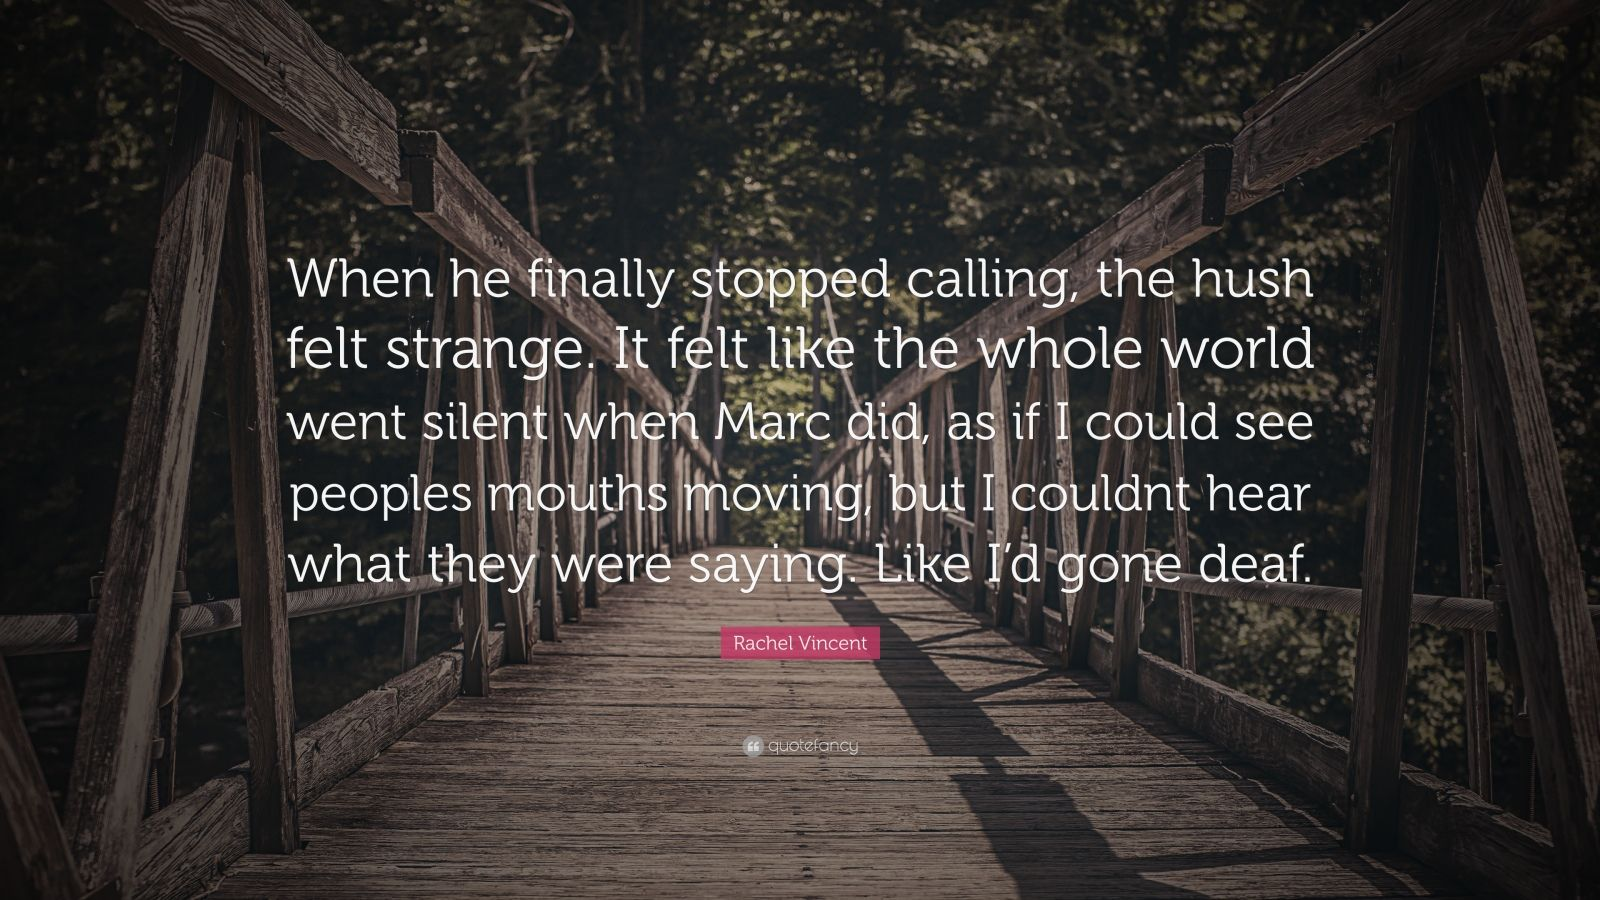 """Rachel Vincent Quote: """"When he finally stopped calling, the hush felt strange. It felt like the whole world went silent when Marc did, as if I could see peoples mouths moving, but I couldnt hear what they were saying. Like I'd gone deaf."""""""